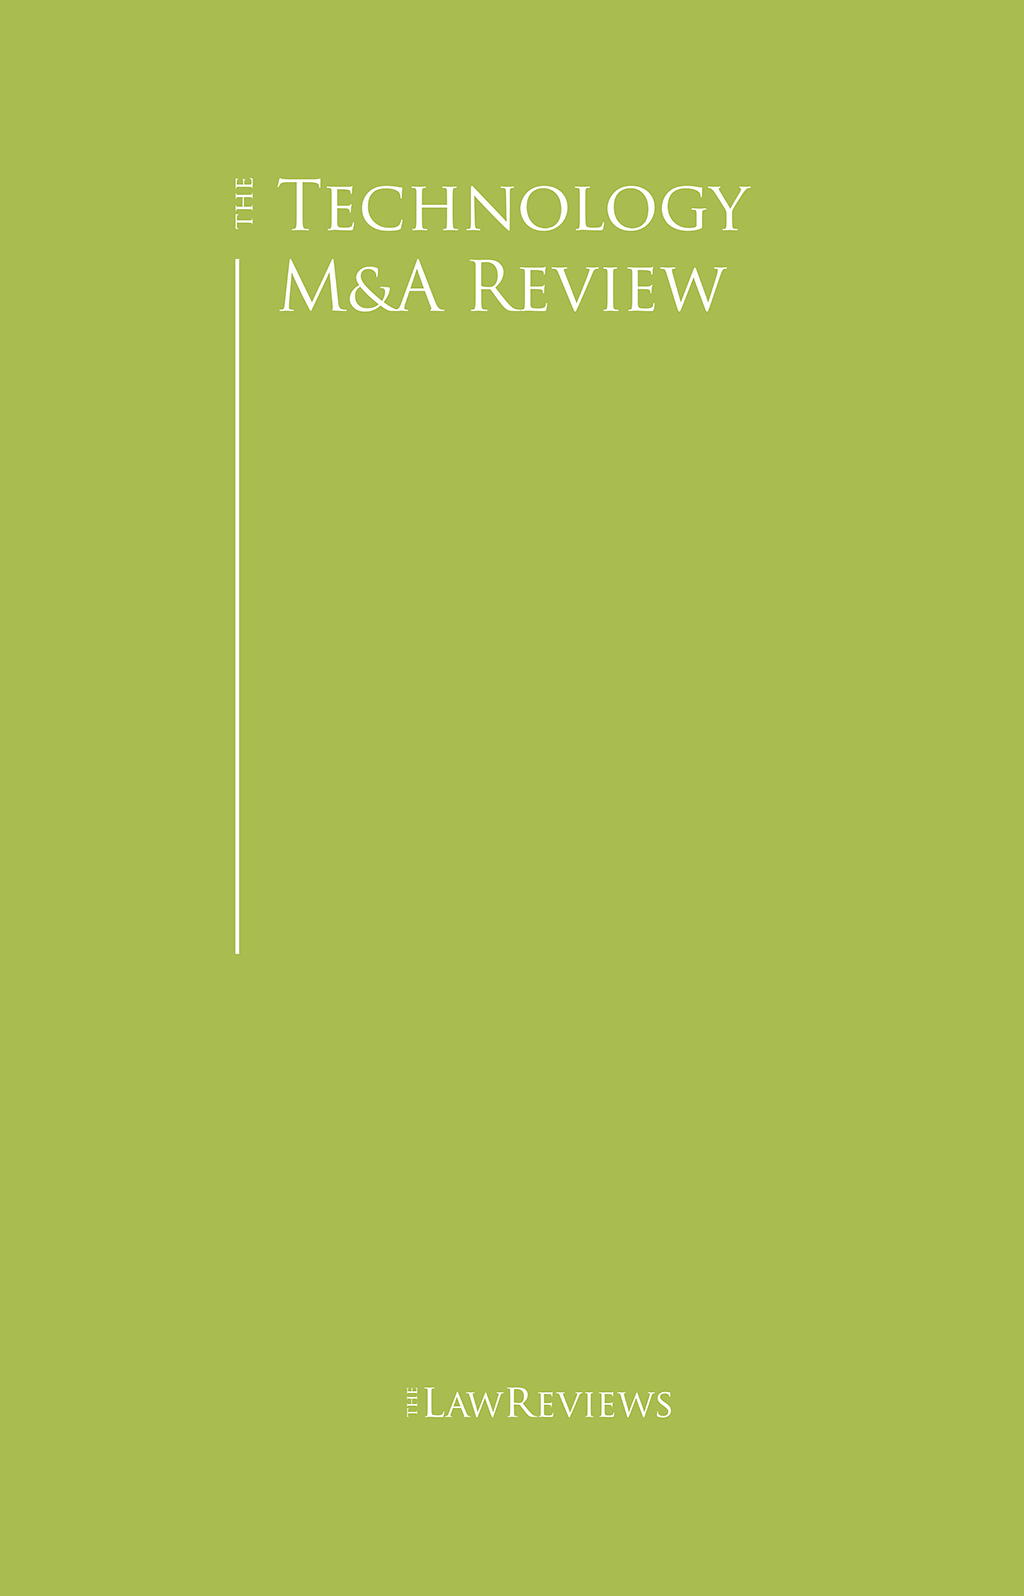 The Technology M&A Review